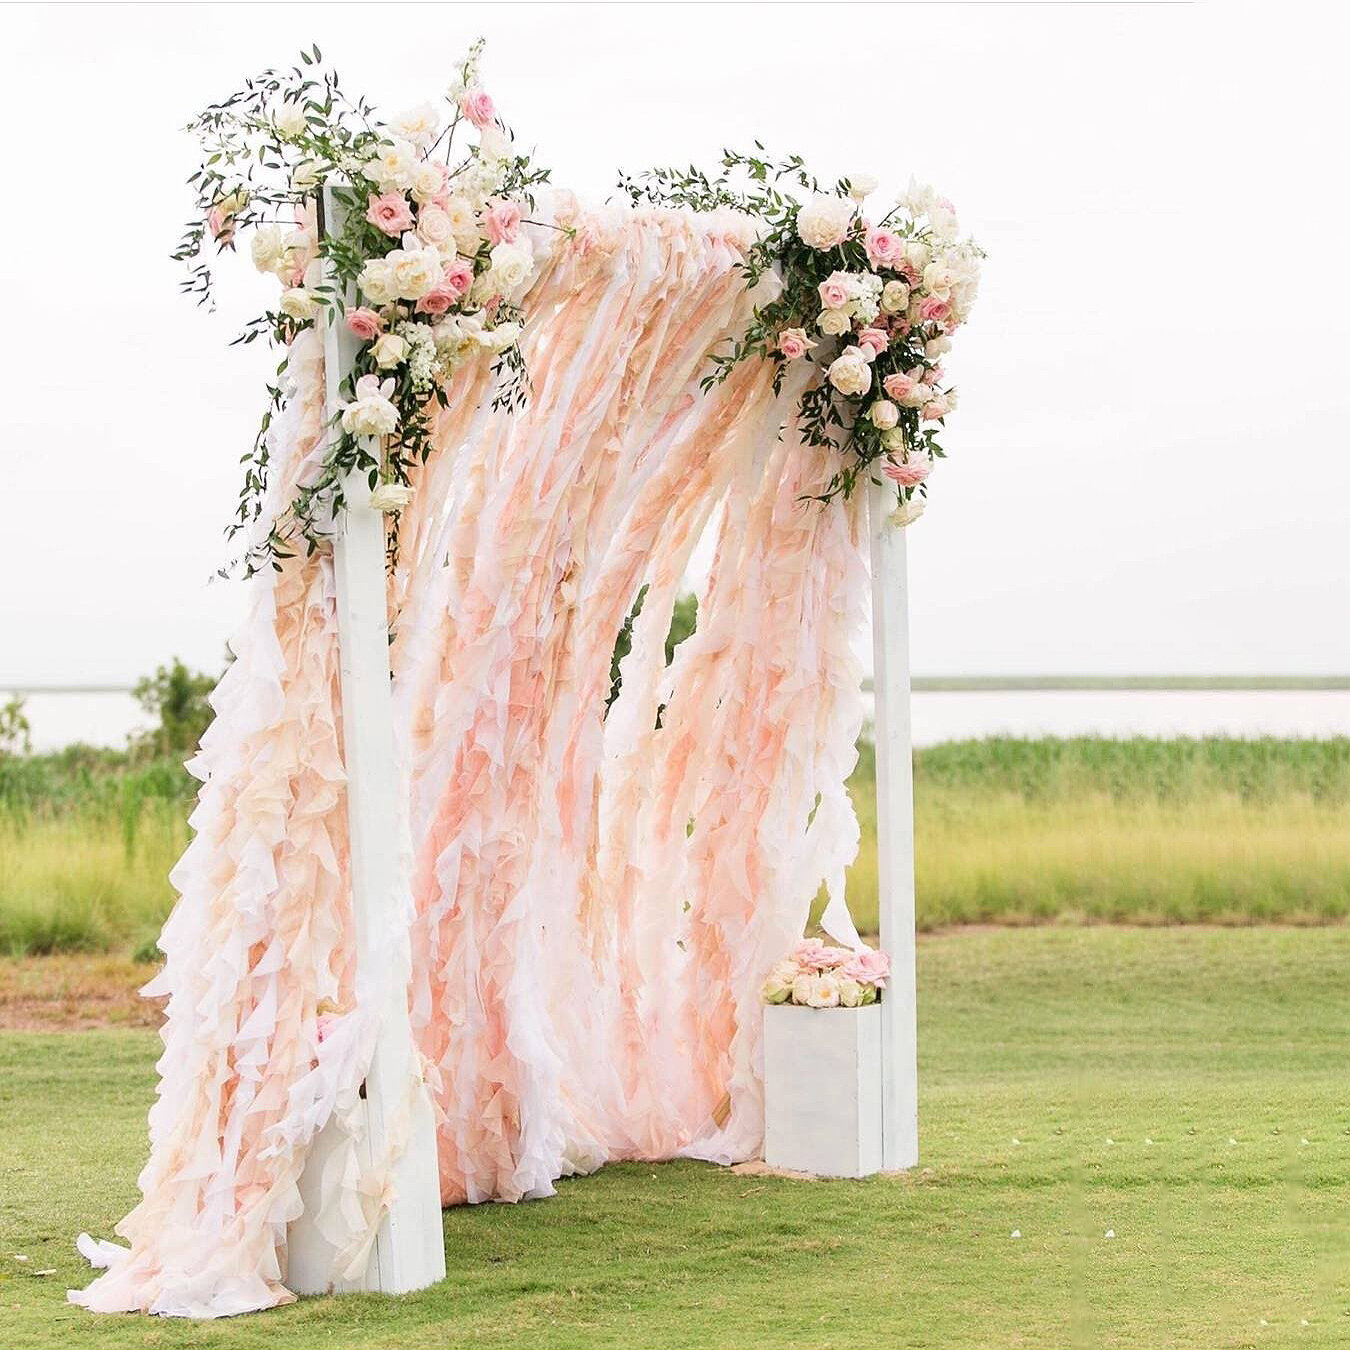 renee landry events outer banks wedding rentals backdrop fabric ruffles pink texture peekaboo.jpg